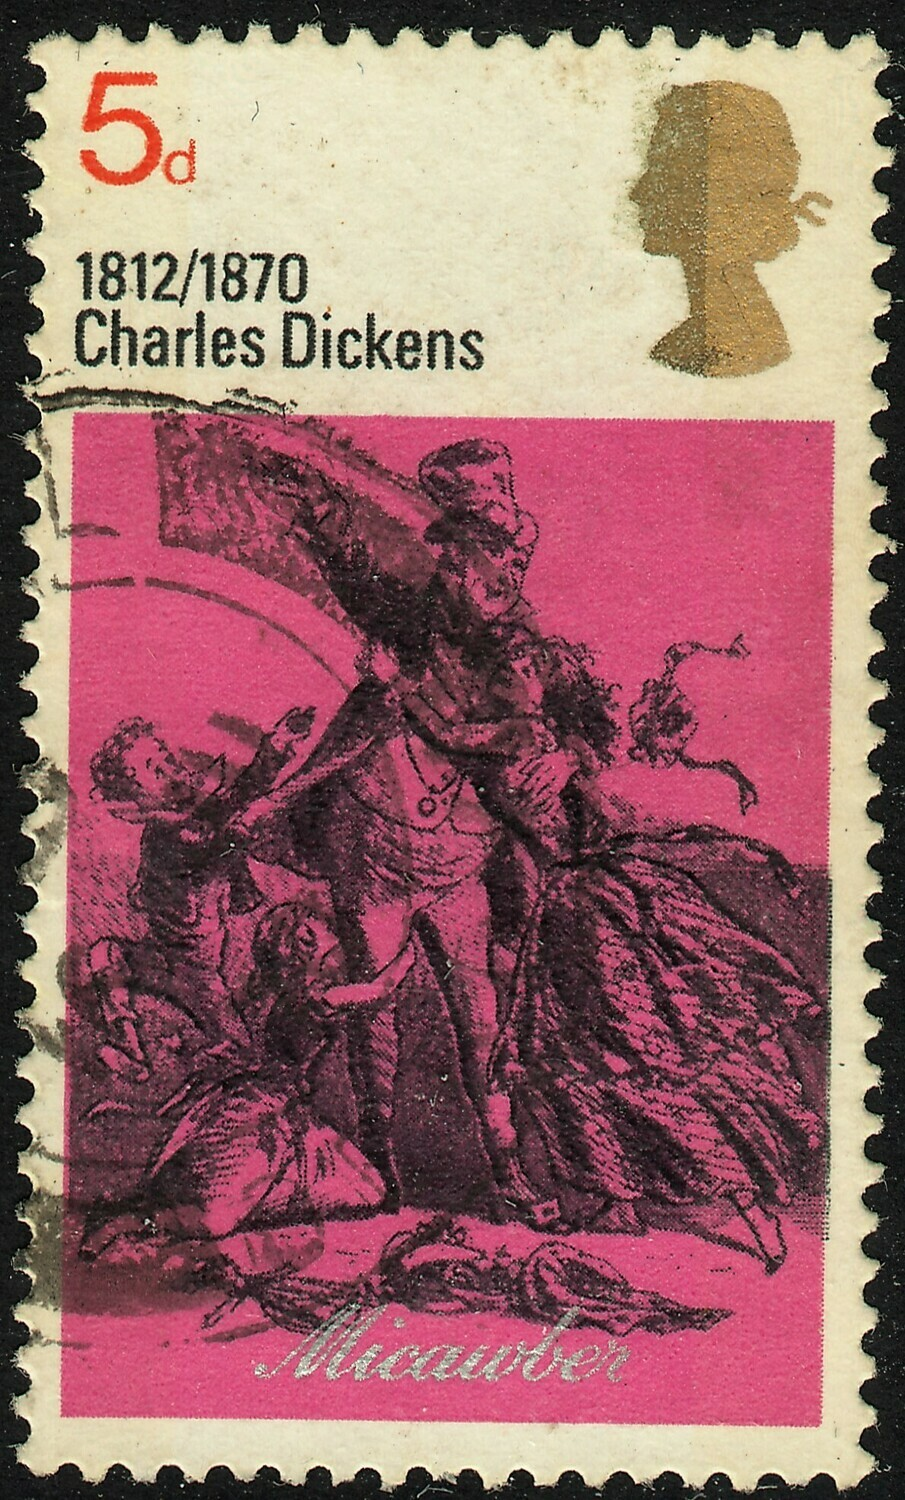 GB 1970 QEII 5d Dickens with Misplaced Embossing on Queens Head Used